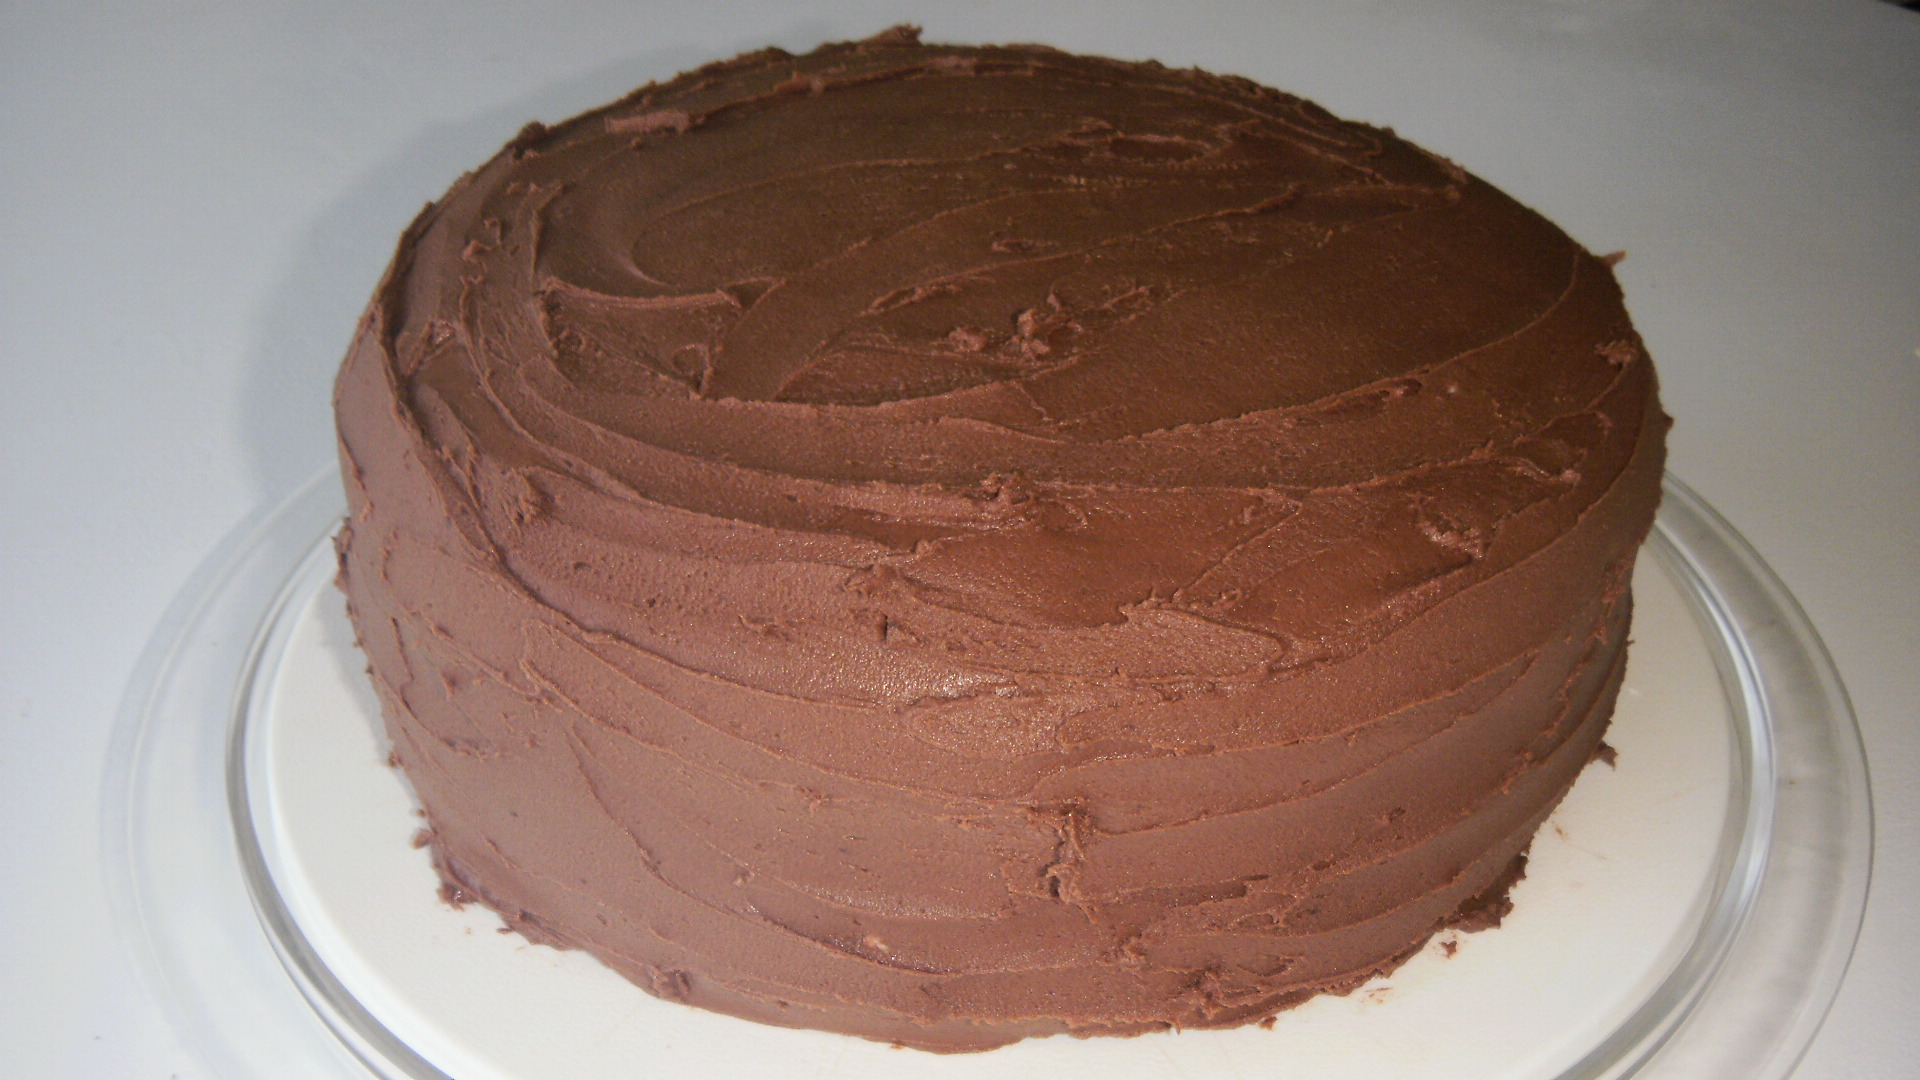 Chocolate Layer Cake With Milk Chocolate Frosting Recipes — Dishmaps